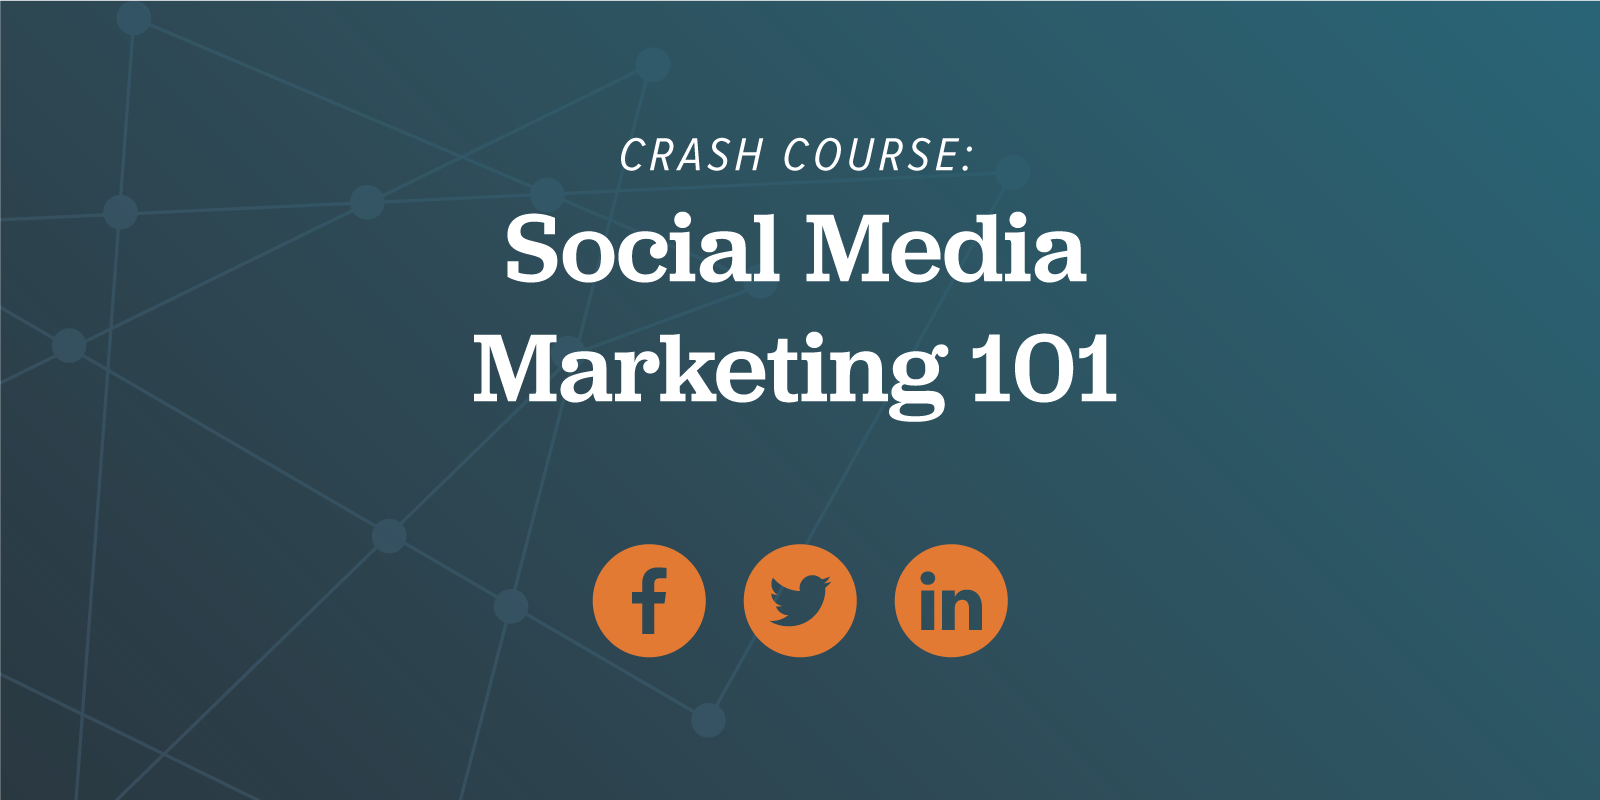 Crash Course: Social Media Marketing 101